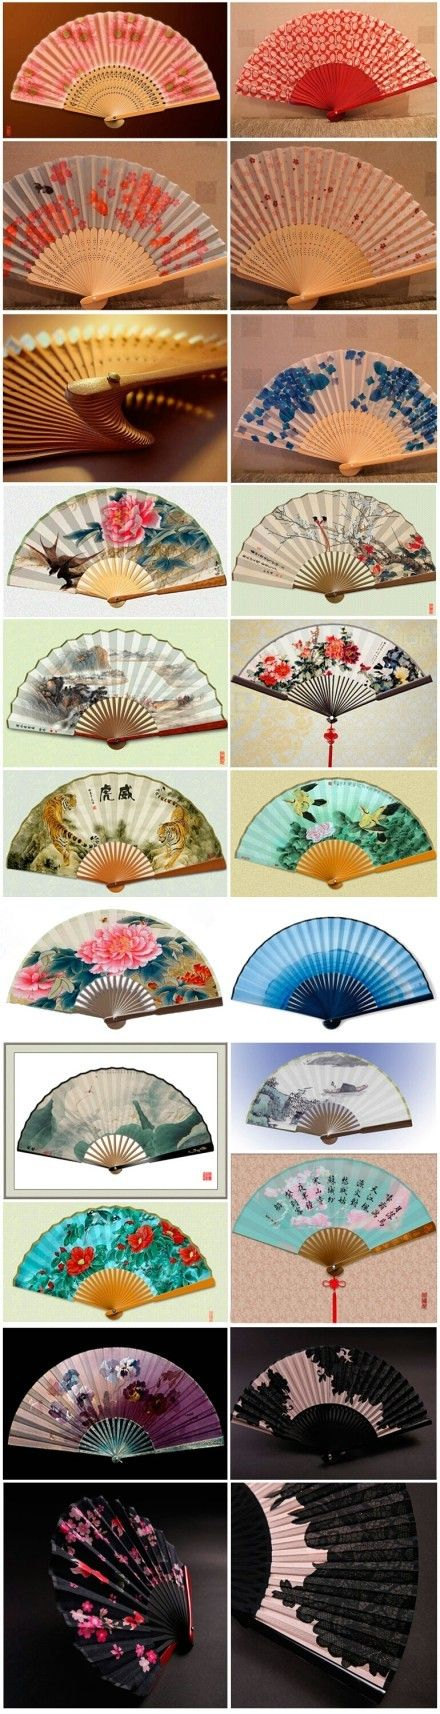 i really want to hang fans in my house!